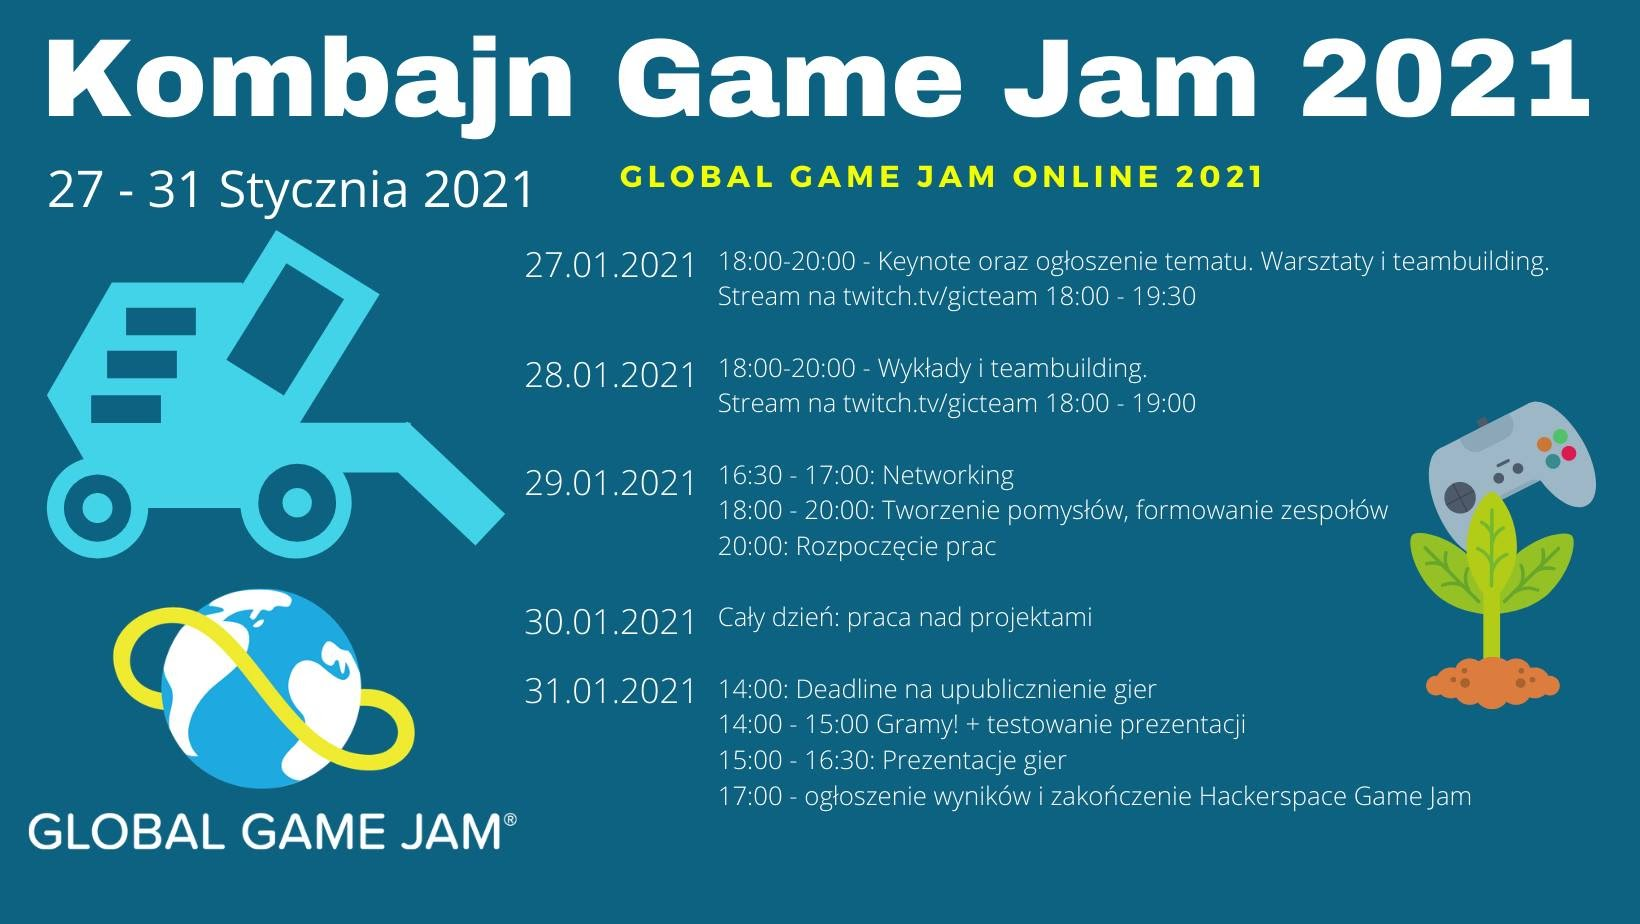 GLOBAL GAME JAME ONLINE 2021